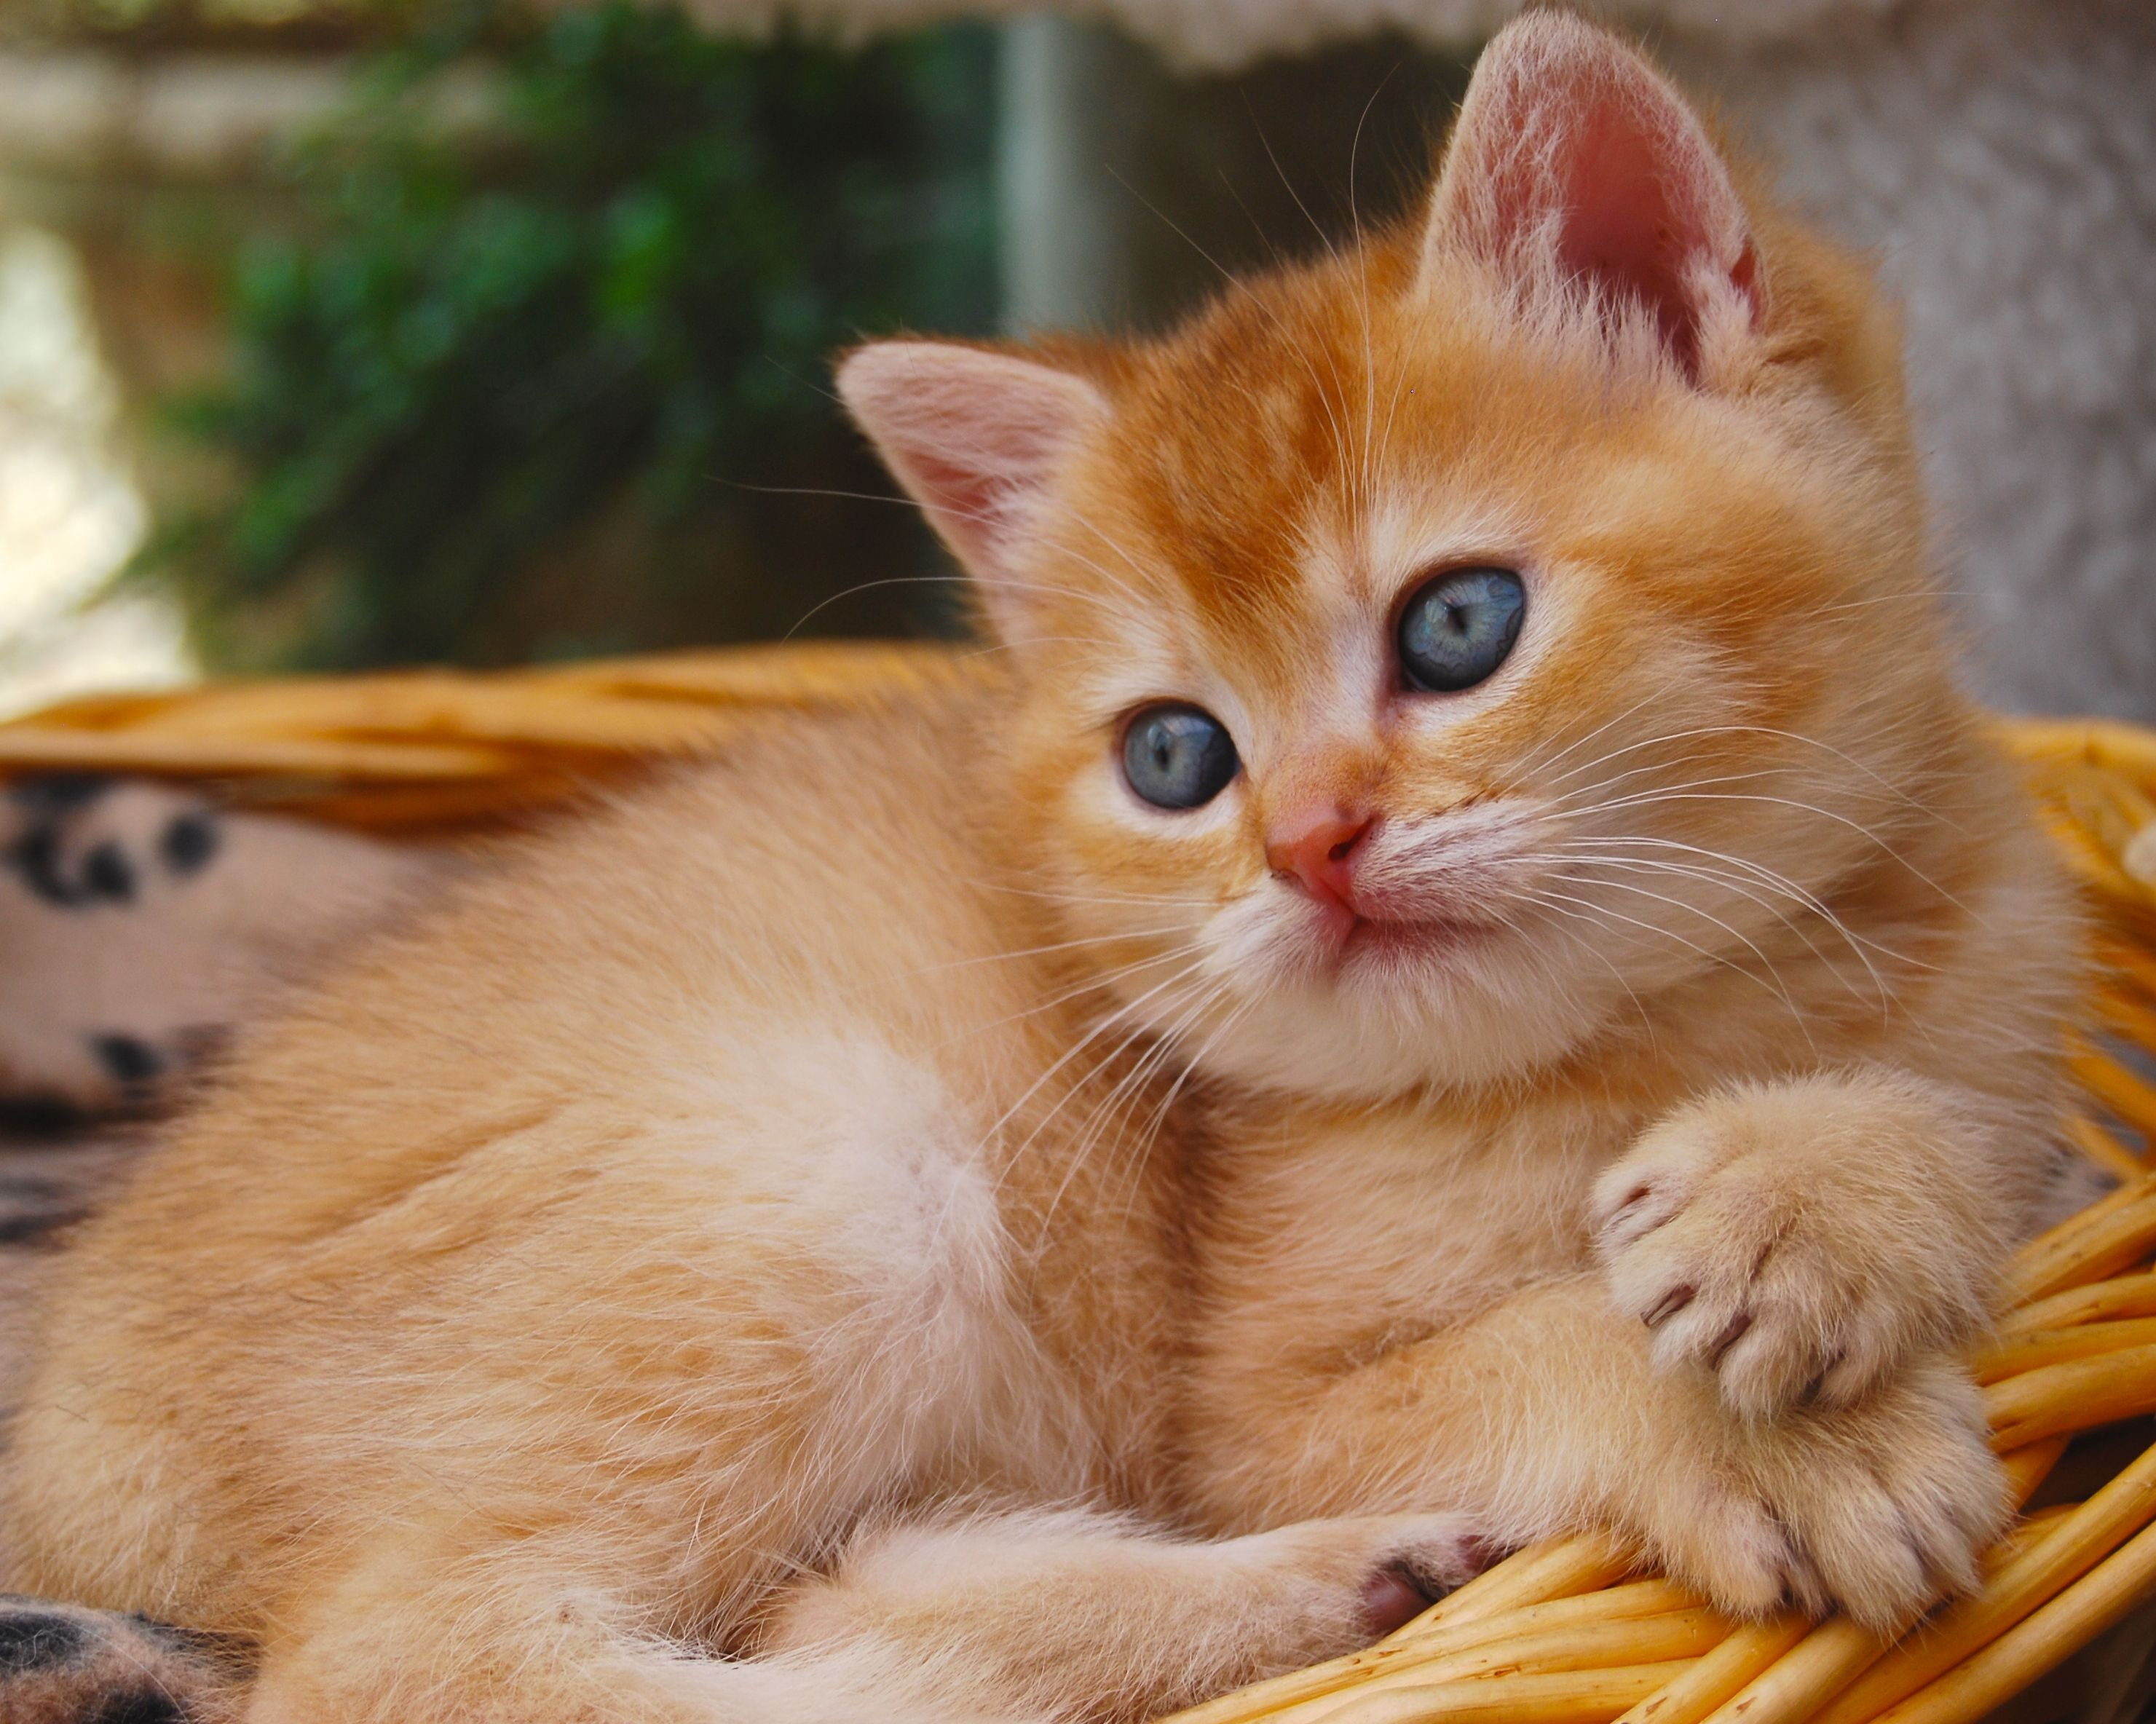 Belle Ayr Summers Marmalade Golden Shaded British Shorthair British Shorthair Cats British Shorthair Animals